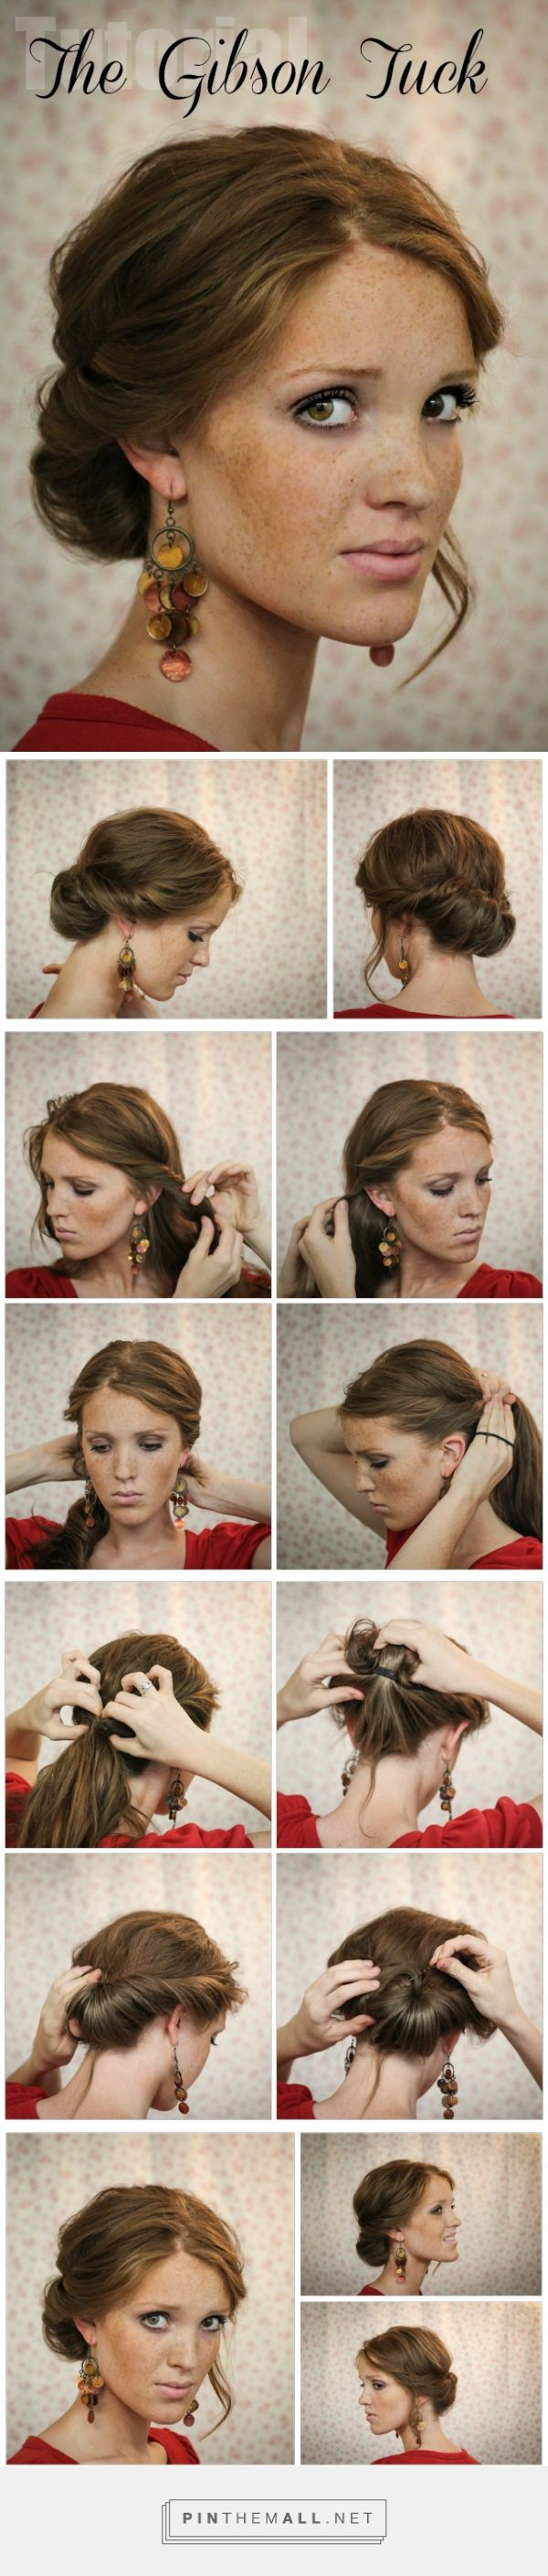 cool The Freckled Fox: Hair Tutorial// The Gibson Tuck... - a grouped images picture by http://www.danazhairstyles.xyz/hair-tutorials/the-freckled-fox-hair-tutorial-the-gibson-tuck-a-grouped-images-picture/